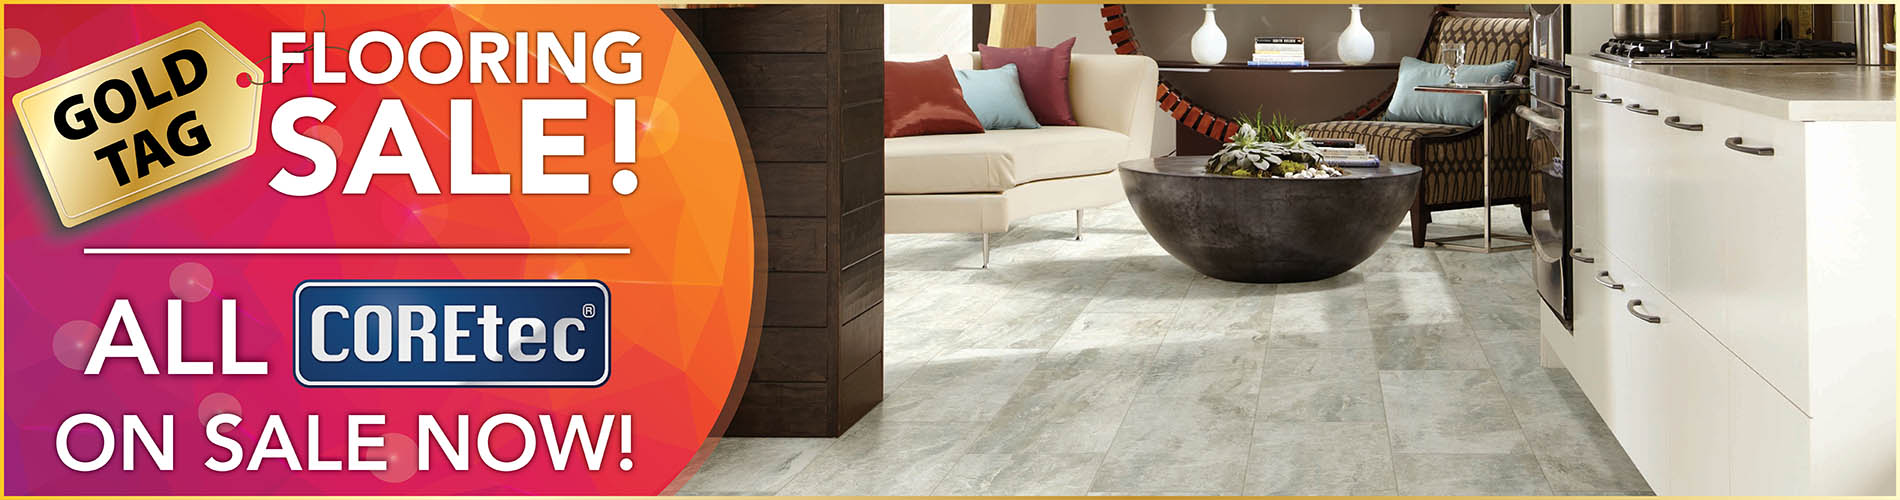 COREtec® luxury vinyl flooring on sale now during the National Gold Tag Flooring Sale this month at Abbey Carpet & Floor in Puyallup!